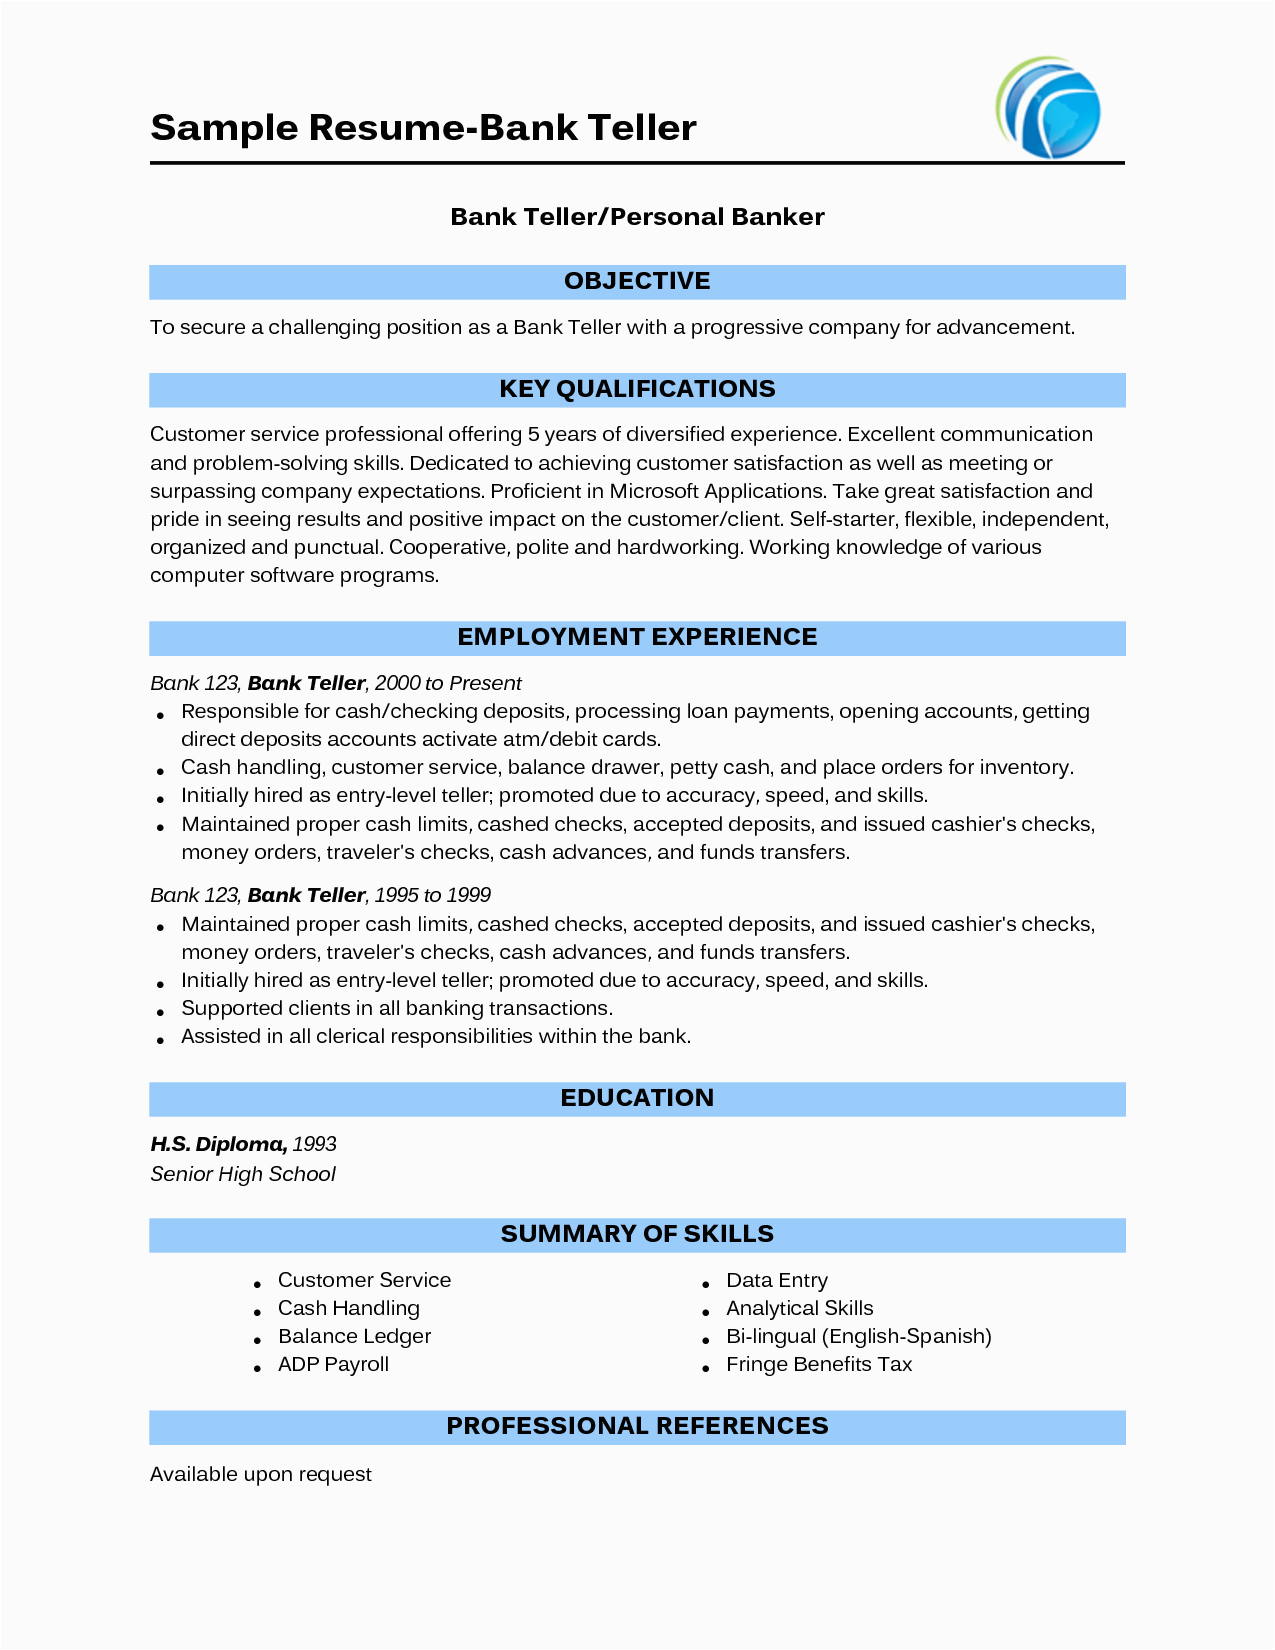 Sample Resume for Bank Jobs with No Experience Teller Resume with No Experience